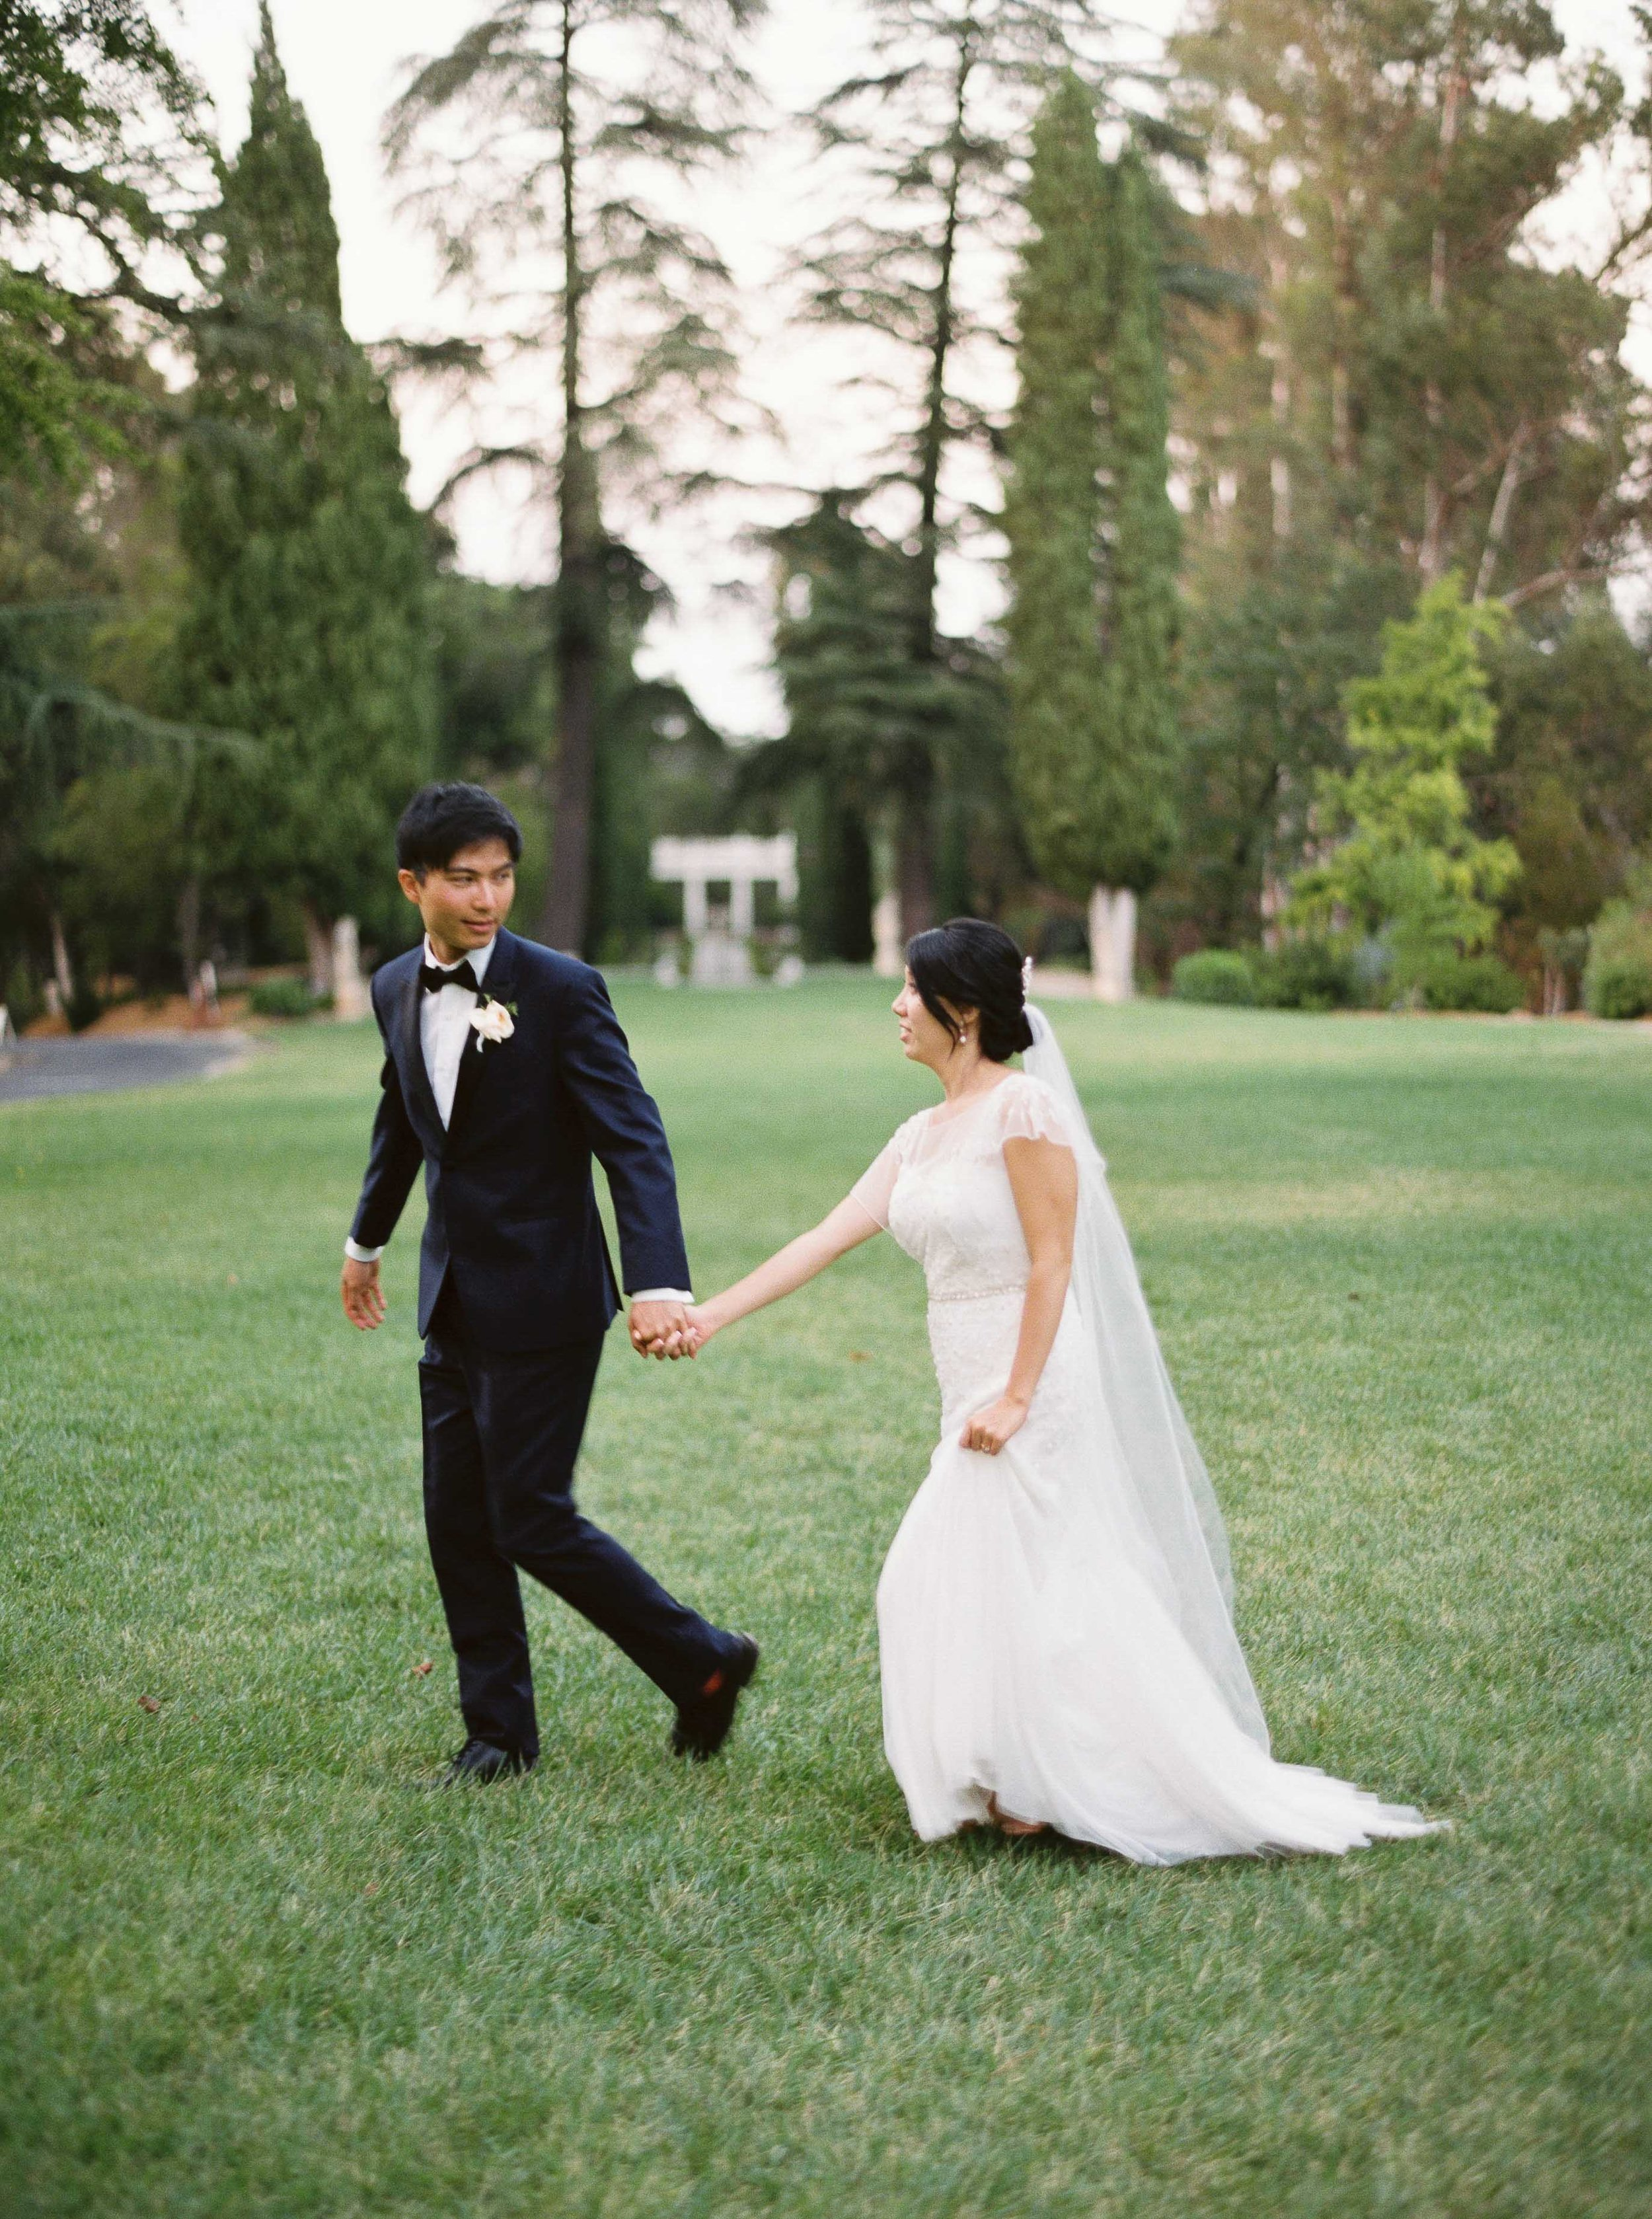 Villa_Montalvo_Wedding_Photographer_Videographer_San_Francisco195.jpg